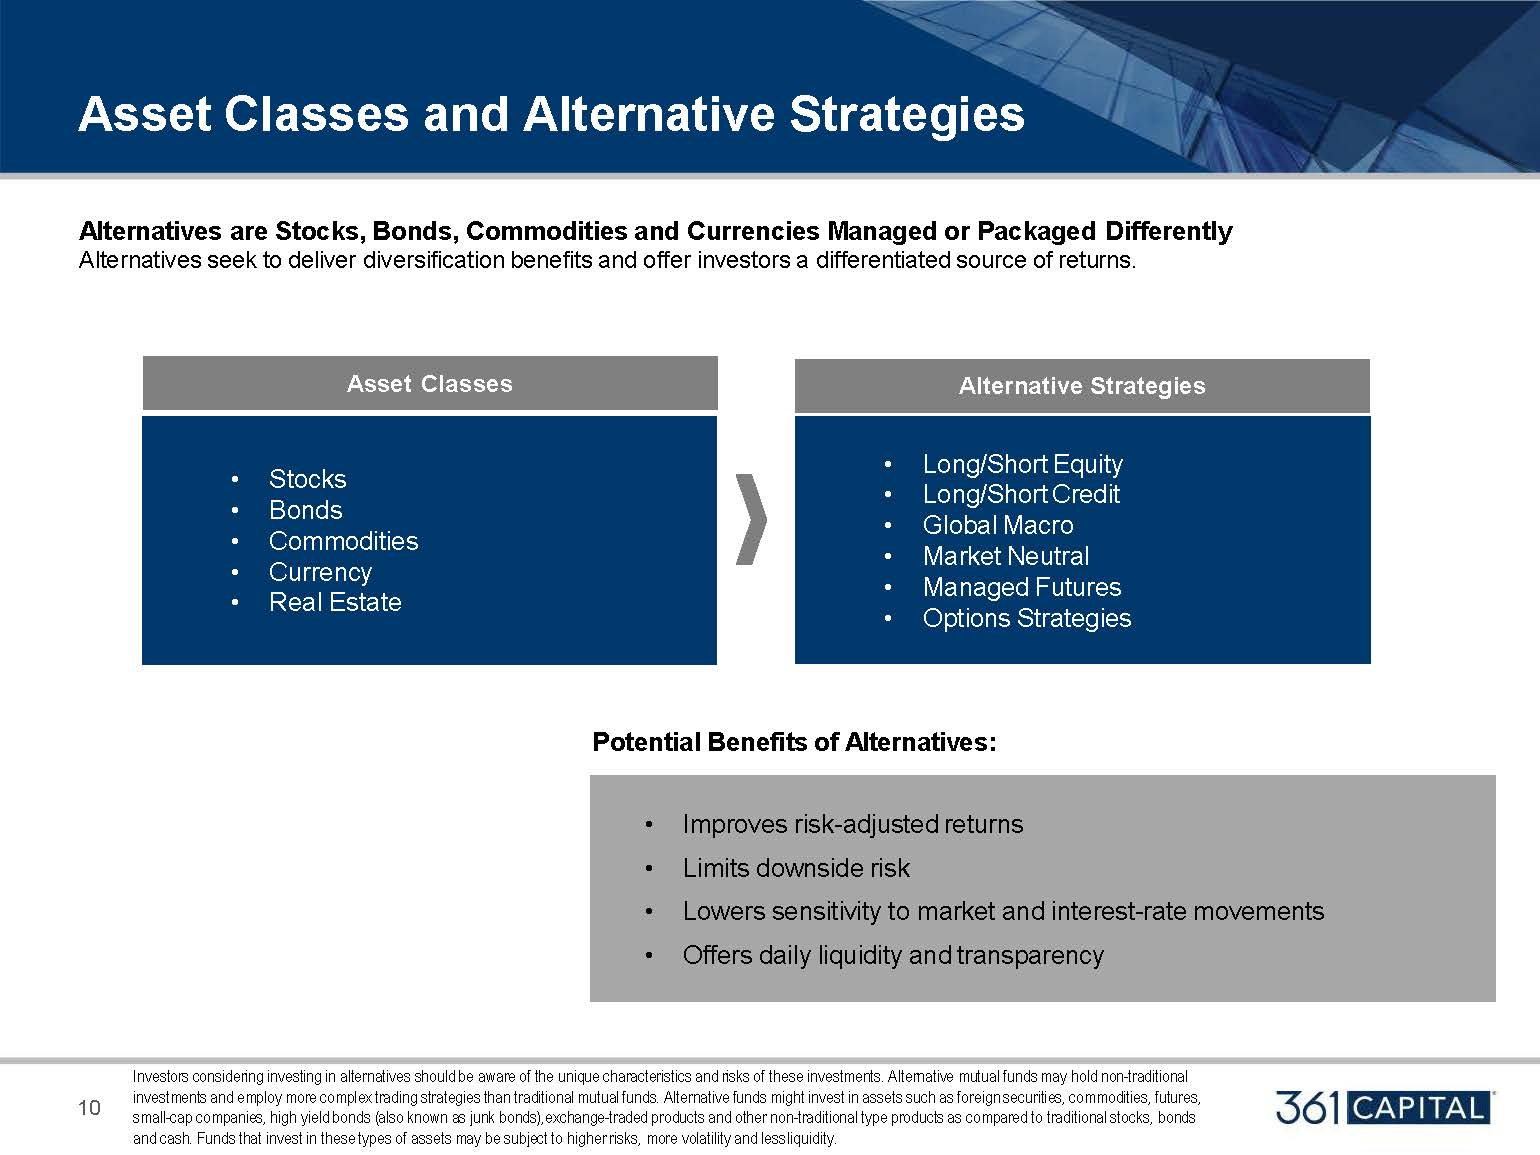 Alternatives are stocks, bonds, commodities and currencies managed or packaged differently